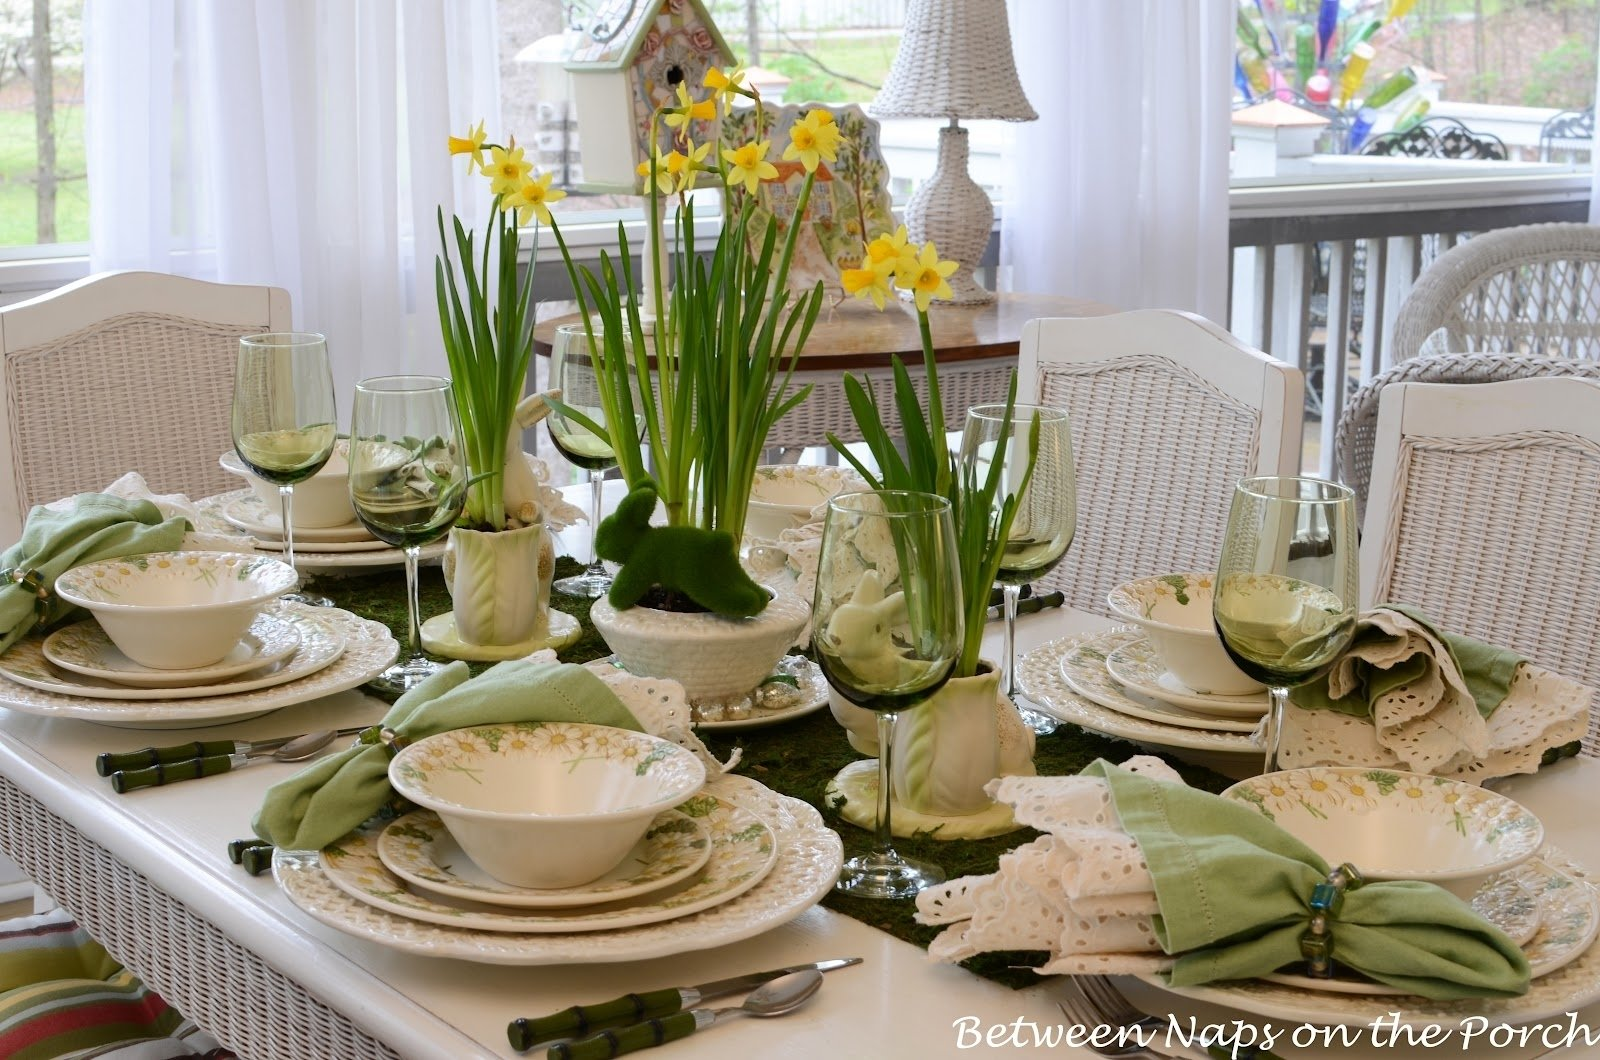 10 Best Easter Decorating Ideas Table Setting 50 table setting ideas bloombety table settings ideas with wooden